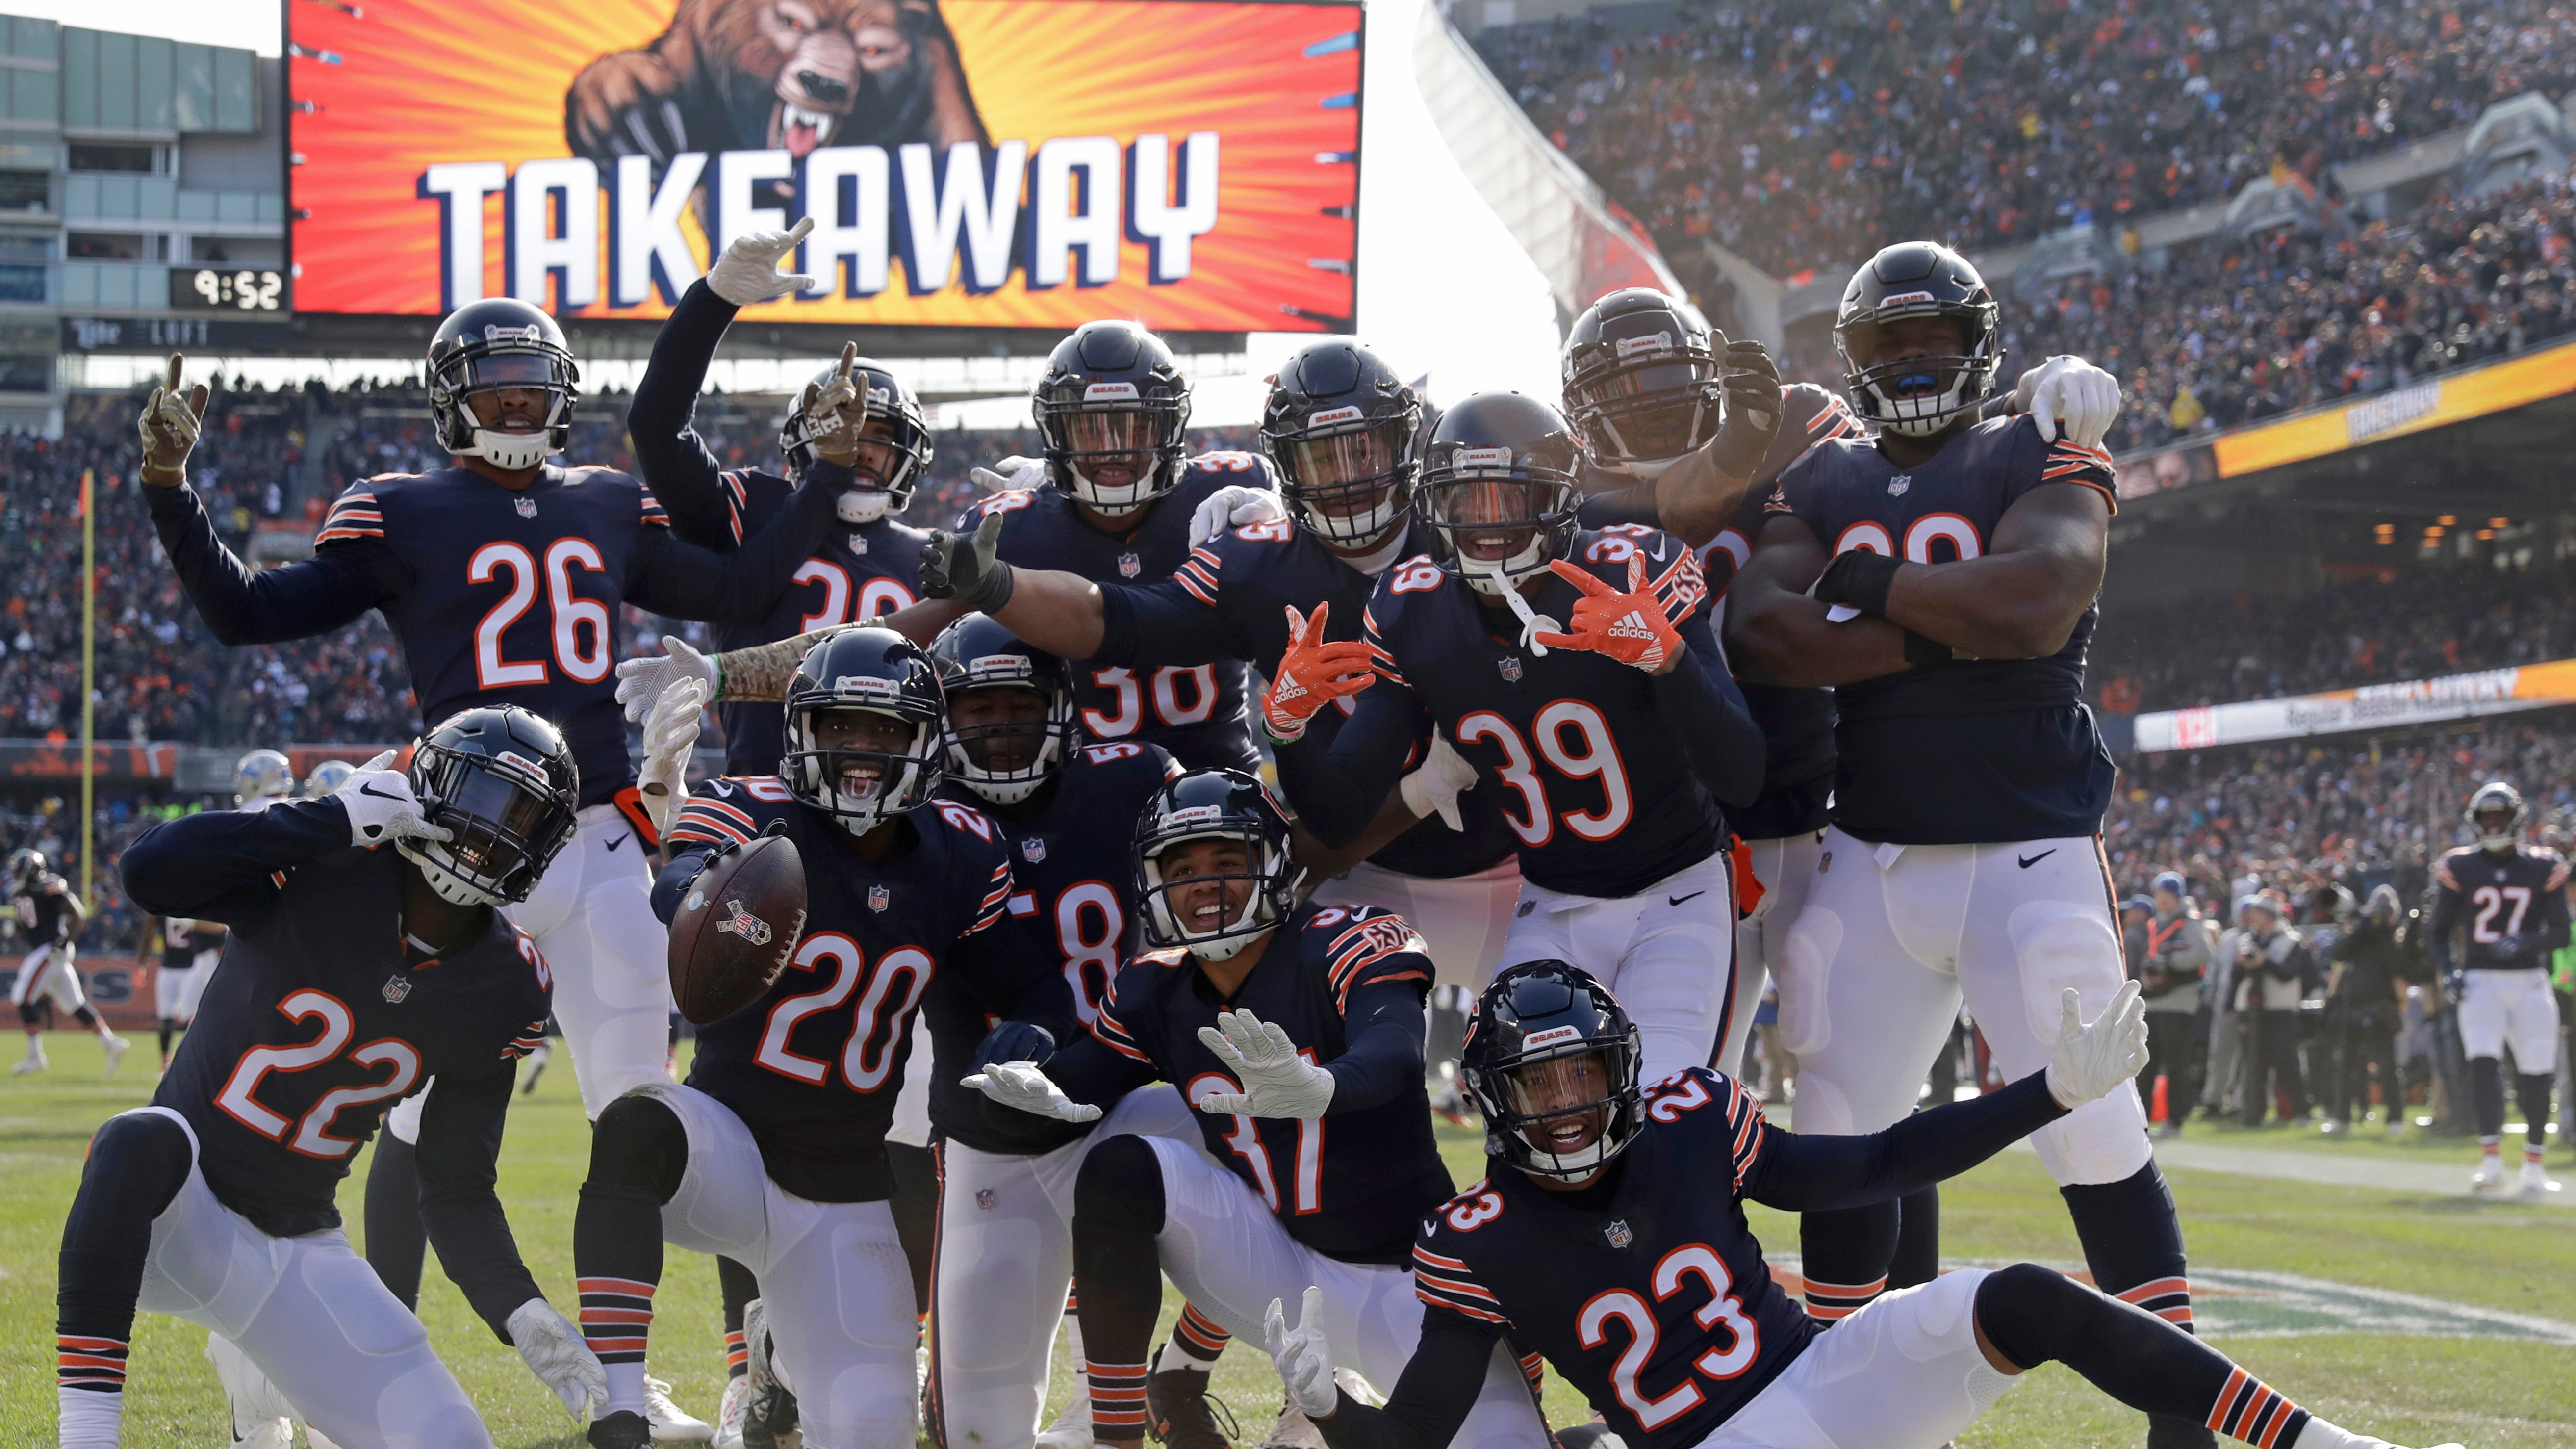 NFL win totals for 2019 season: Oddsmakers set Bears at 9 5